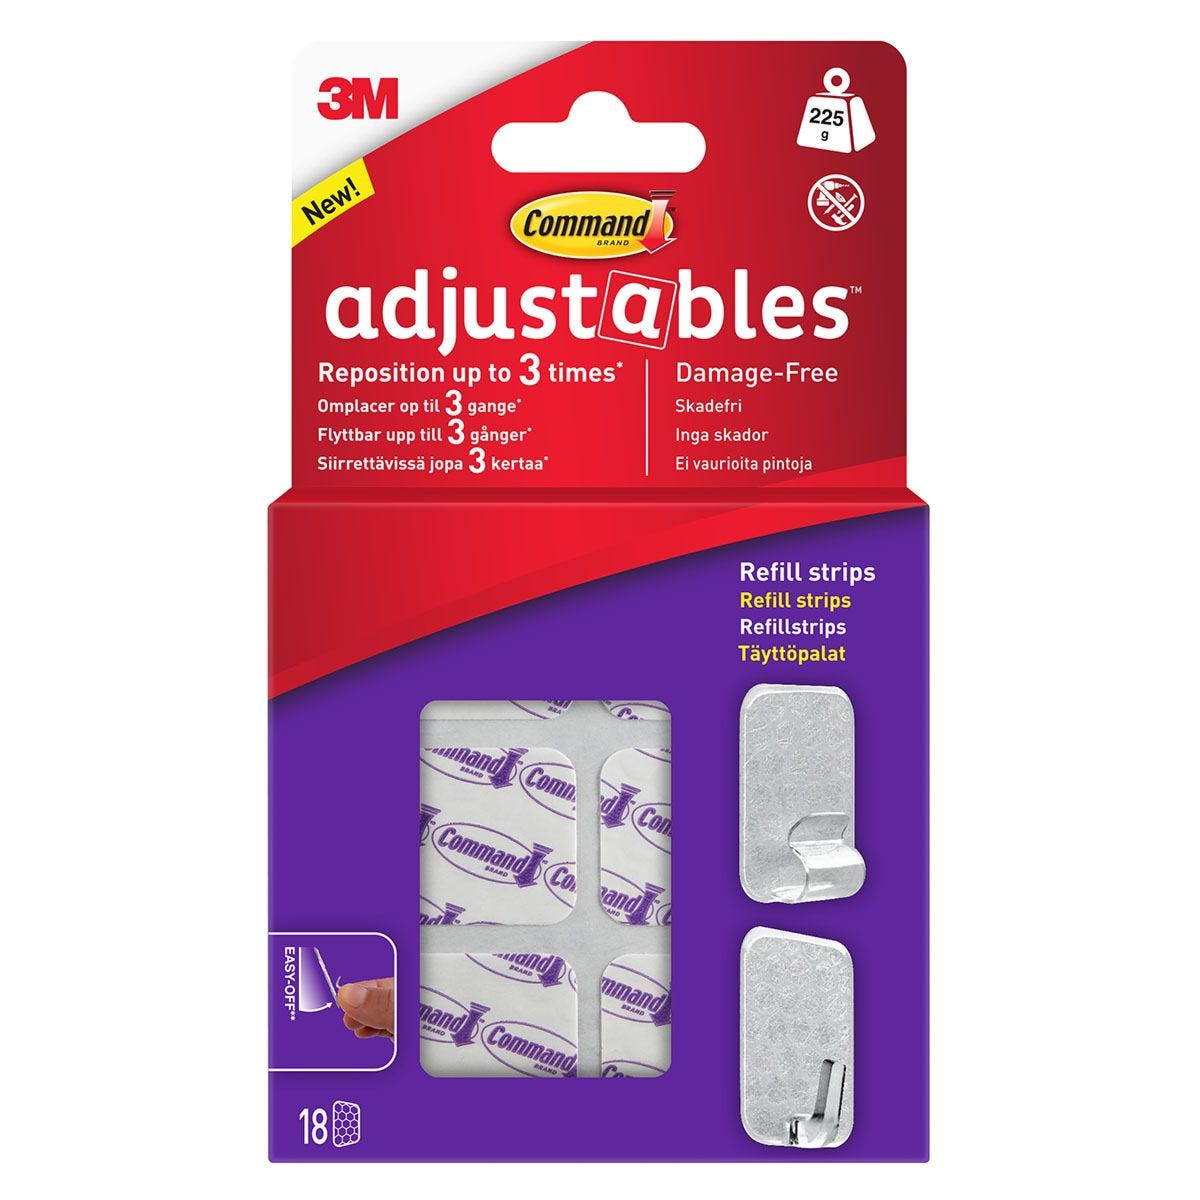 3M Command Adjustables Repositionable Refill Strips - Pack of 18